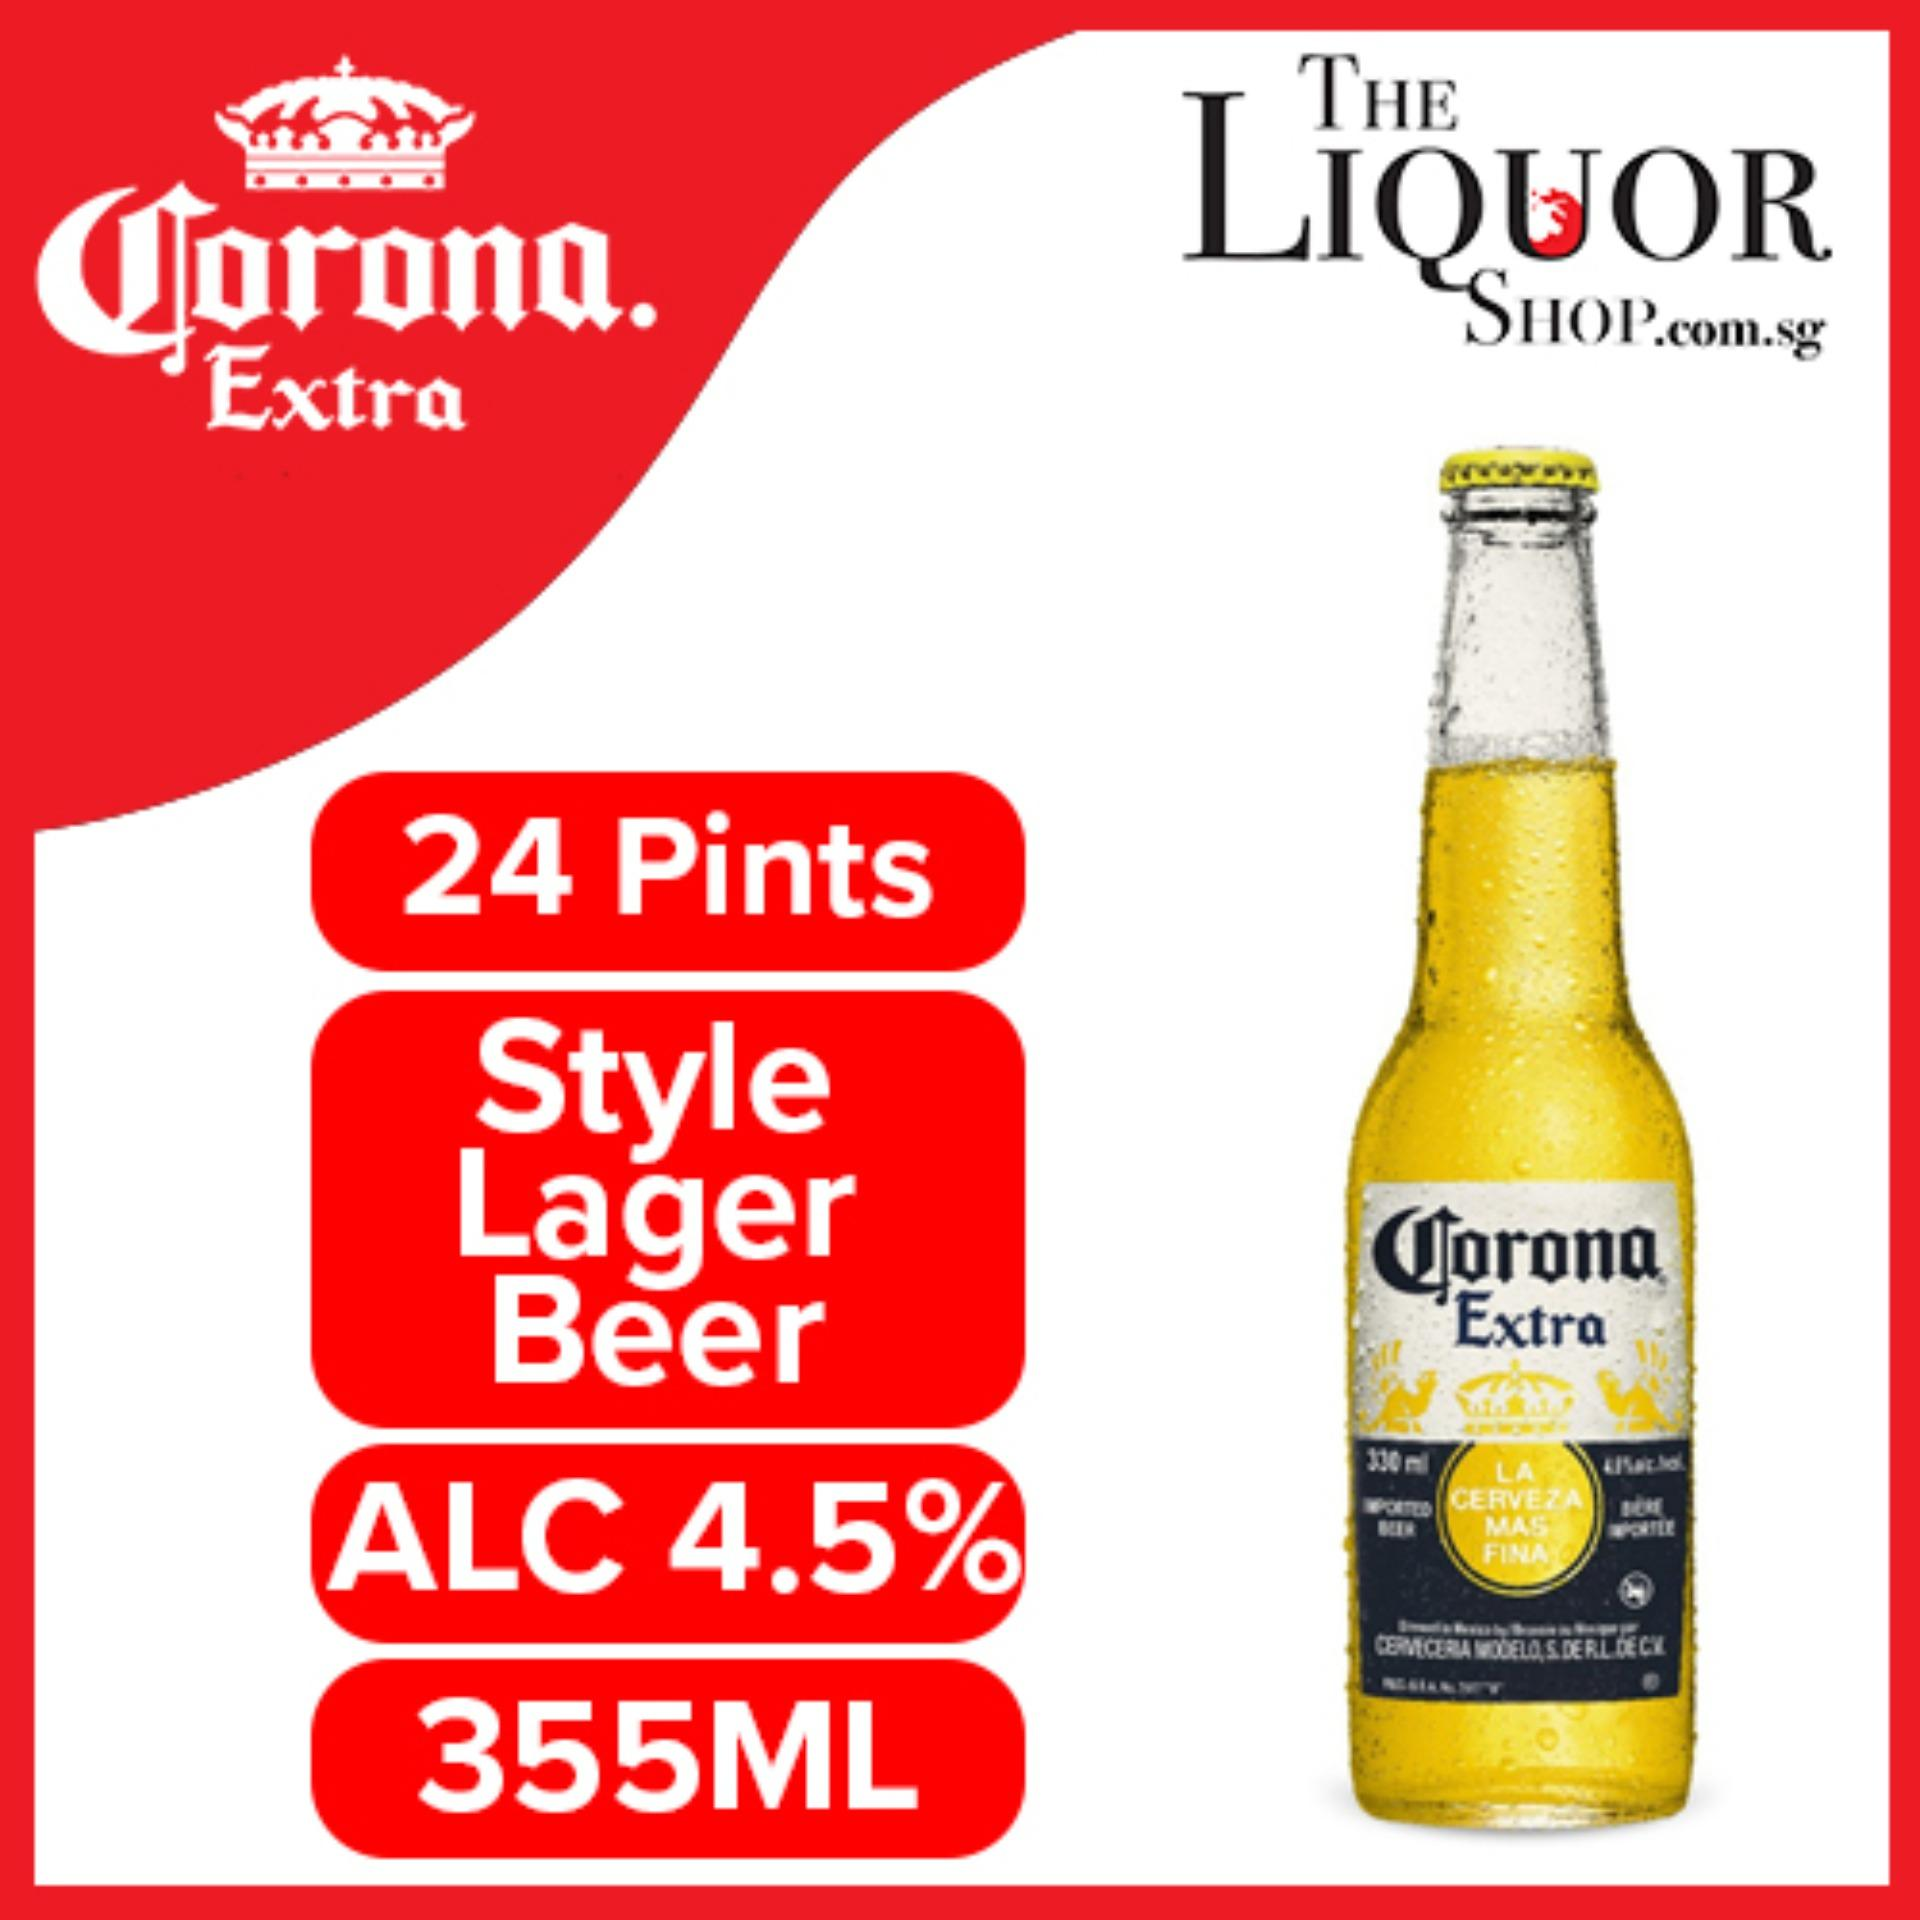 Corona Extra Beer 355 ml x 24 Bottles ( Exp: 16/04/20 - Free Delivery -  Fast Delivery - 3 to 5 working days - The Liquor Shop )